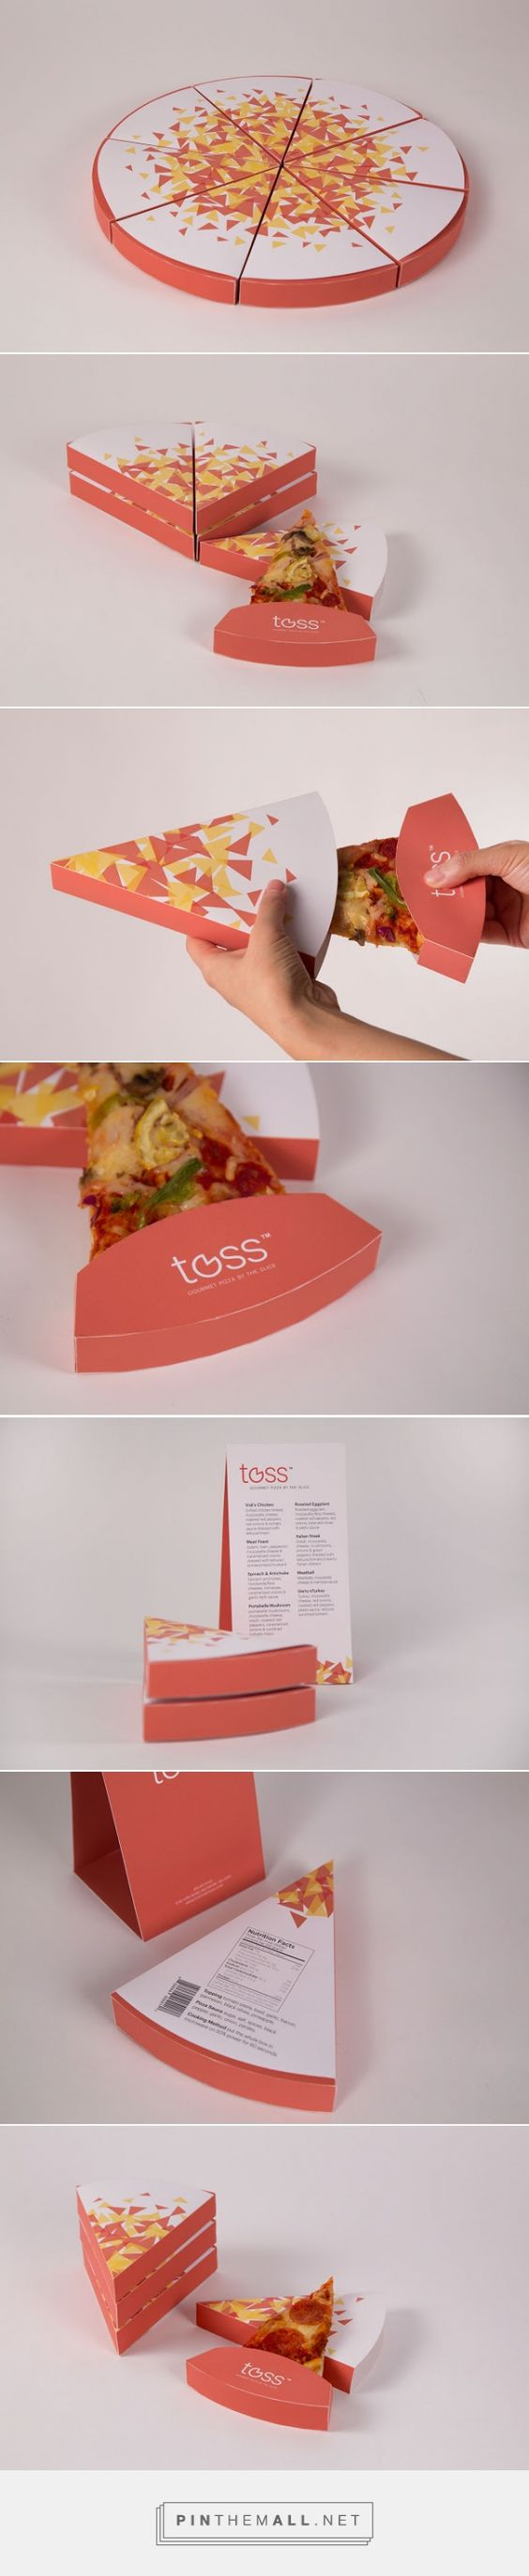 Toss - Gourmet Pizza packaging By The Slice designed by Yinan Wang. 2015 top team packaging pin PD